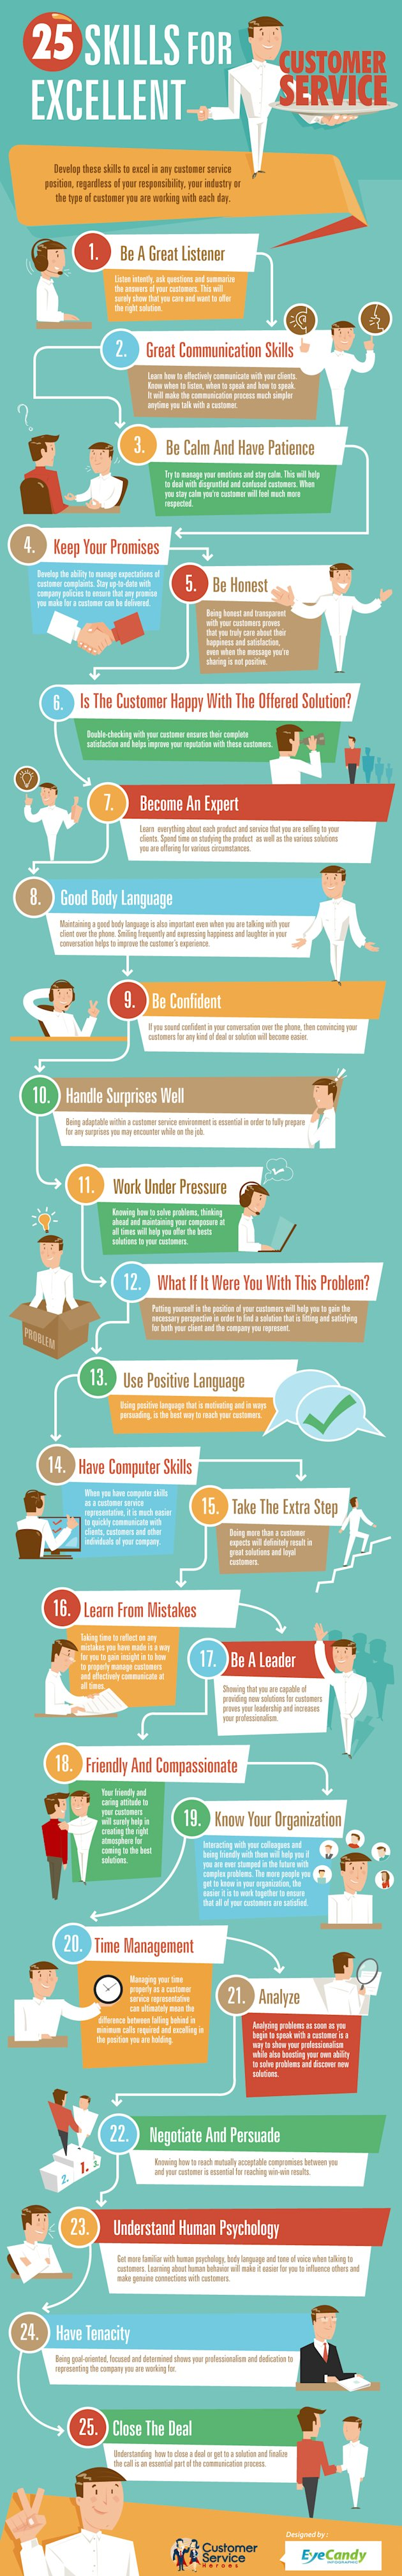 25 Skills Required For Excellent Customer Service (Infographic) image 25 skills for excellent customer service 51f2801797d8c